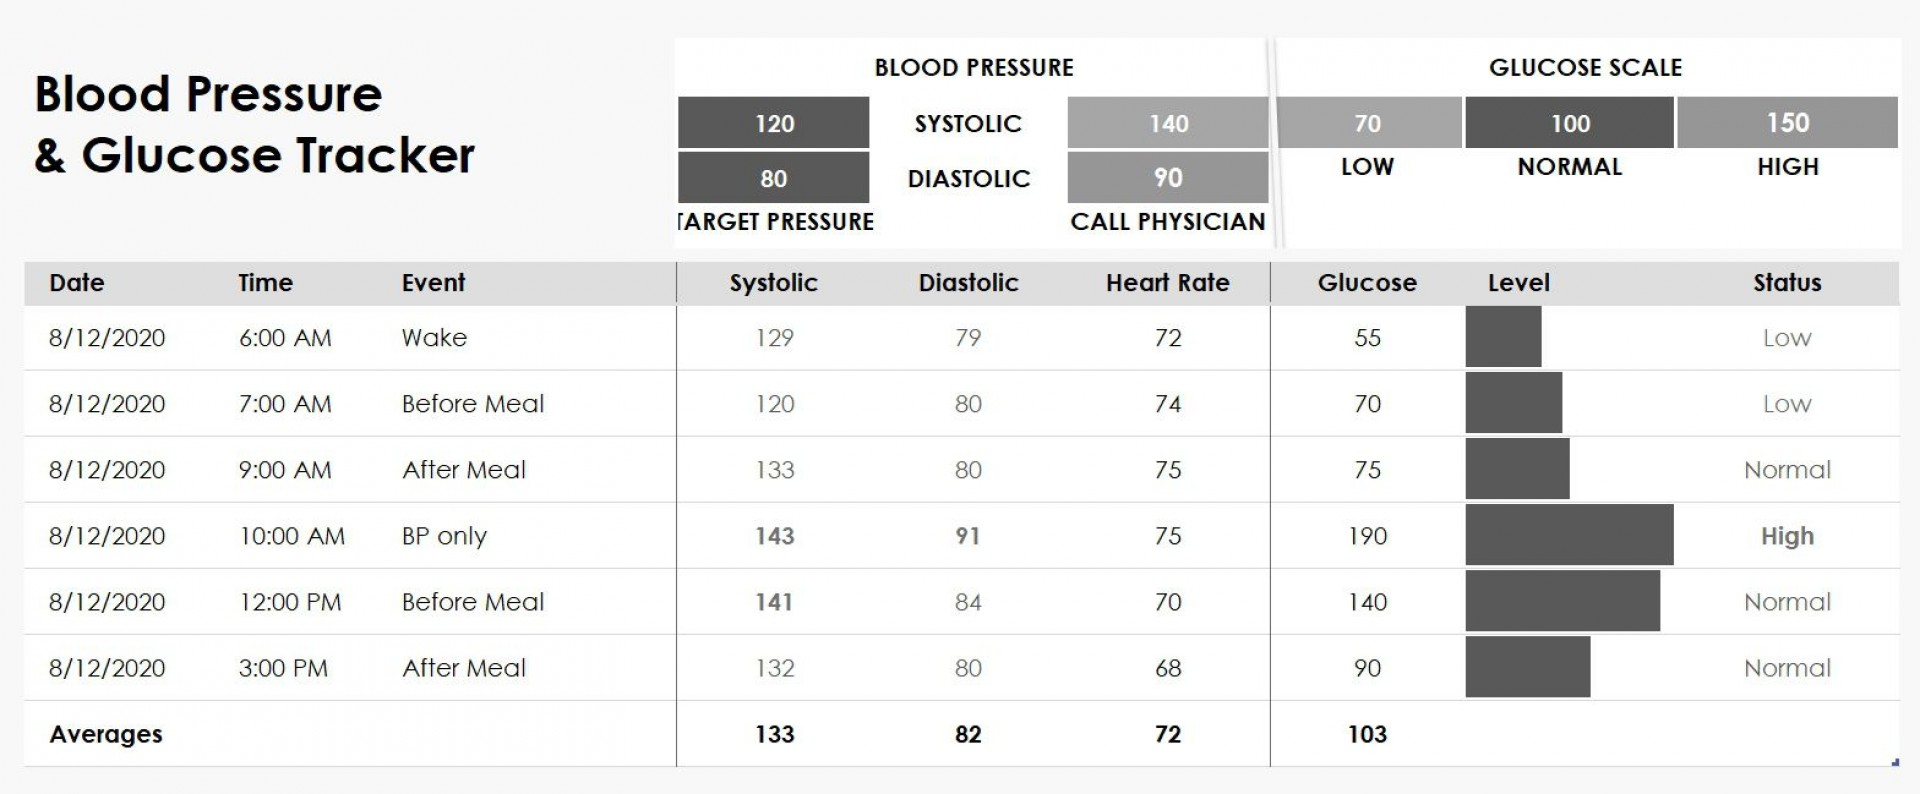 004 Wonderful Blood Glucose Tracker Template Concept  Spreadsheet Tracking1920